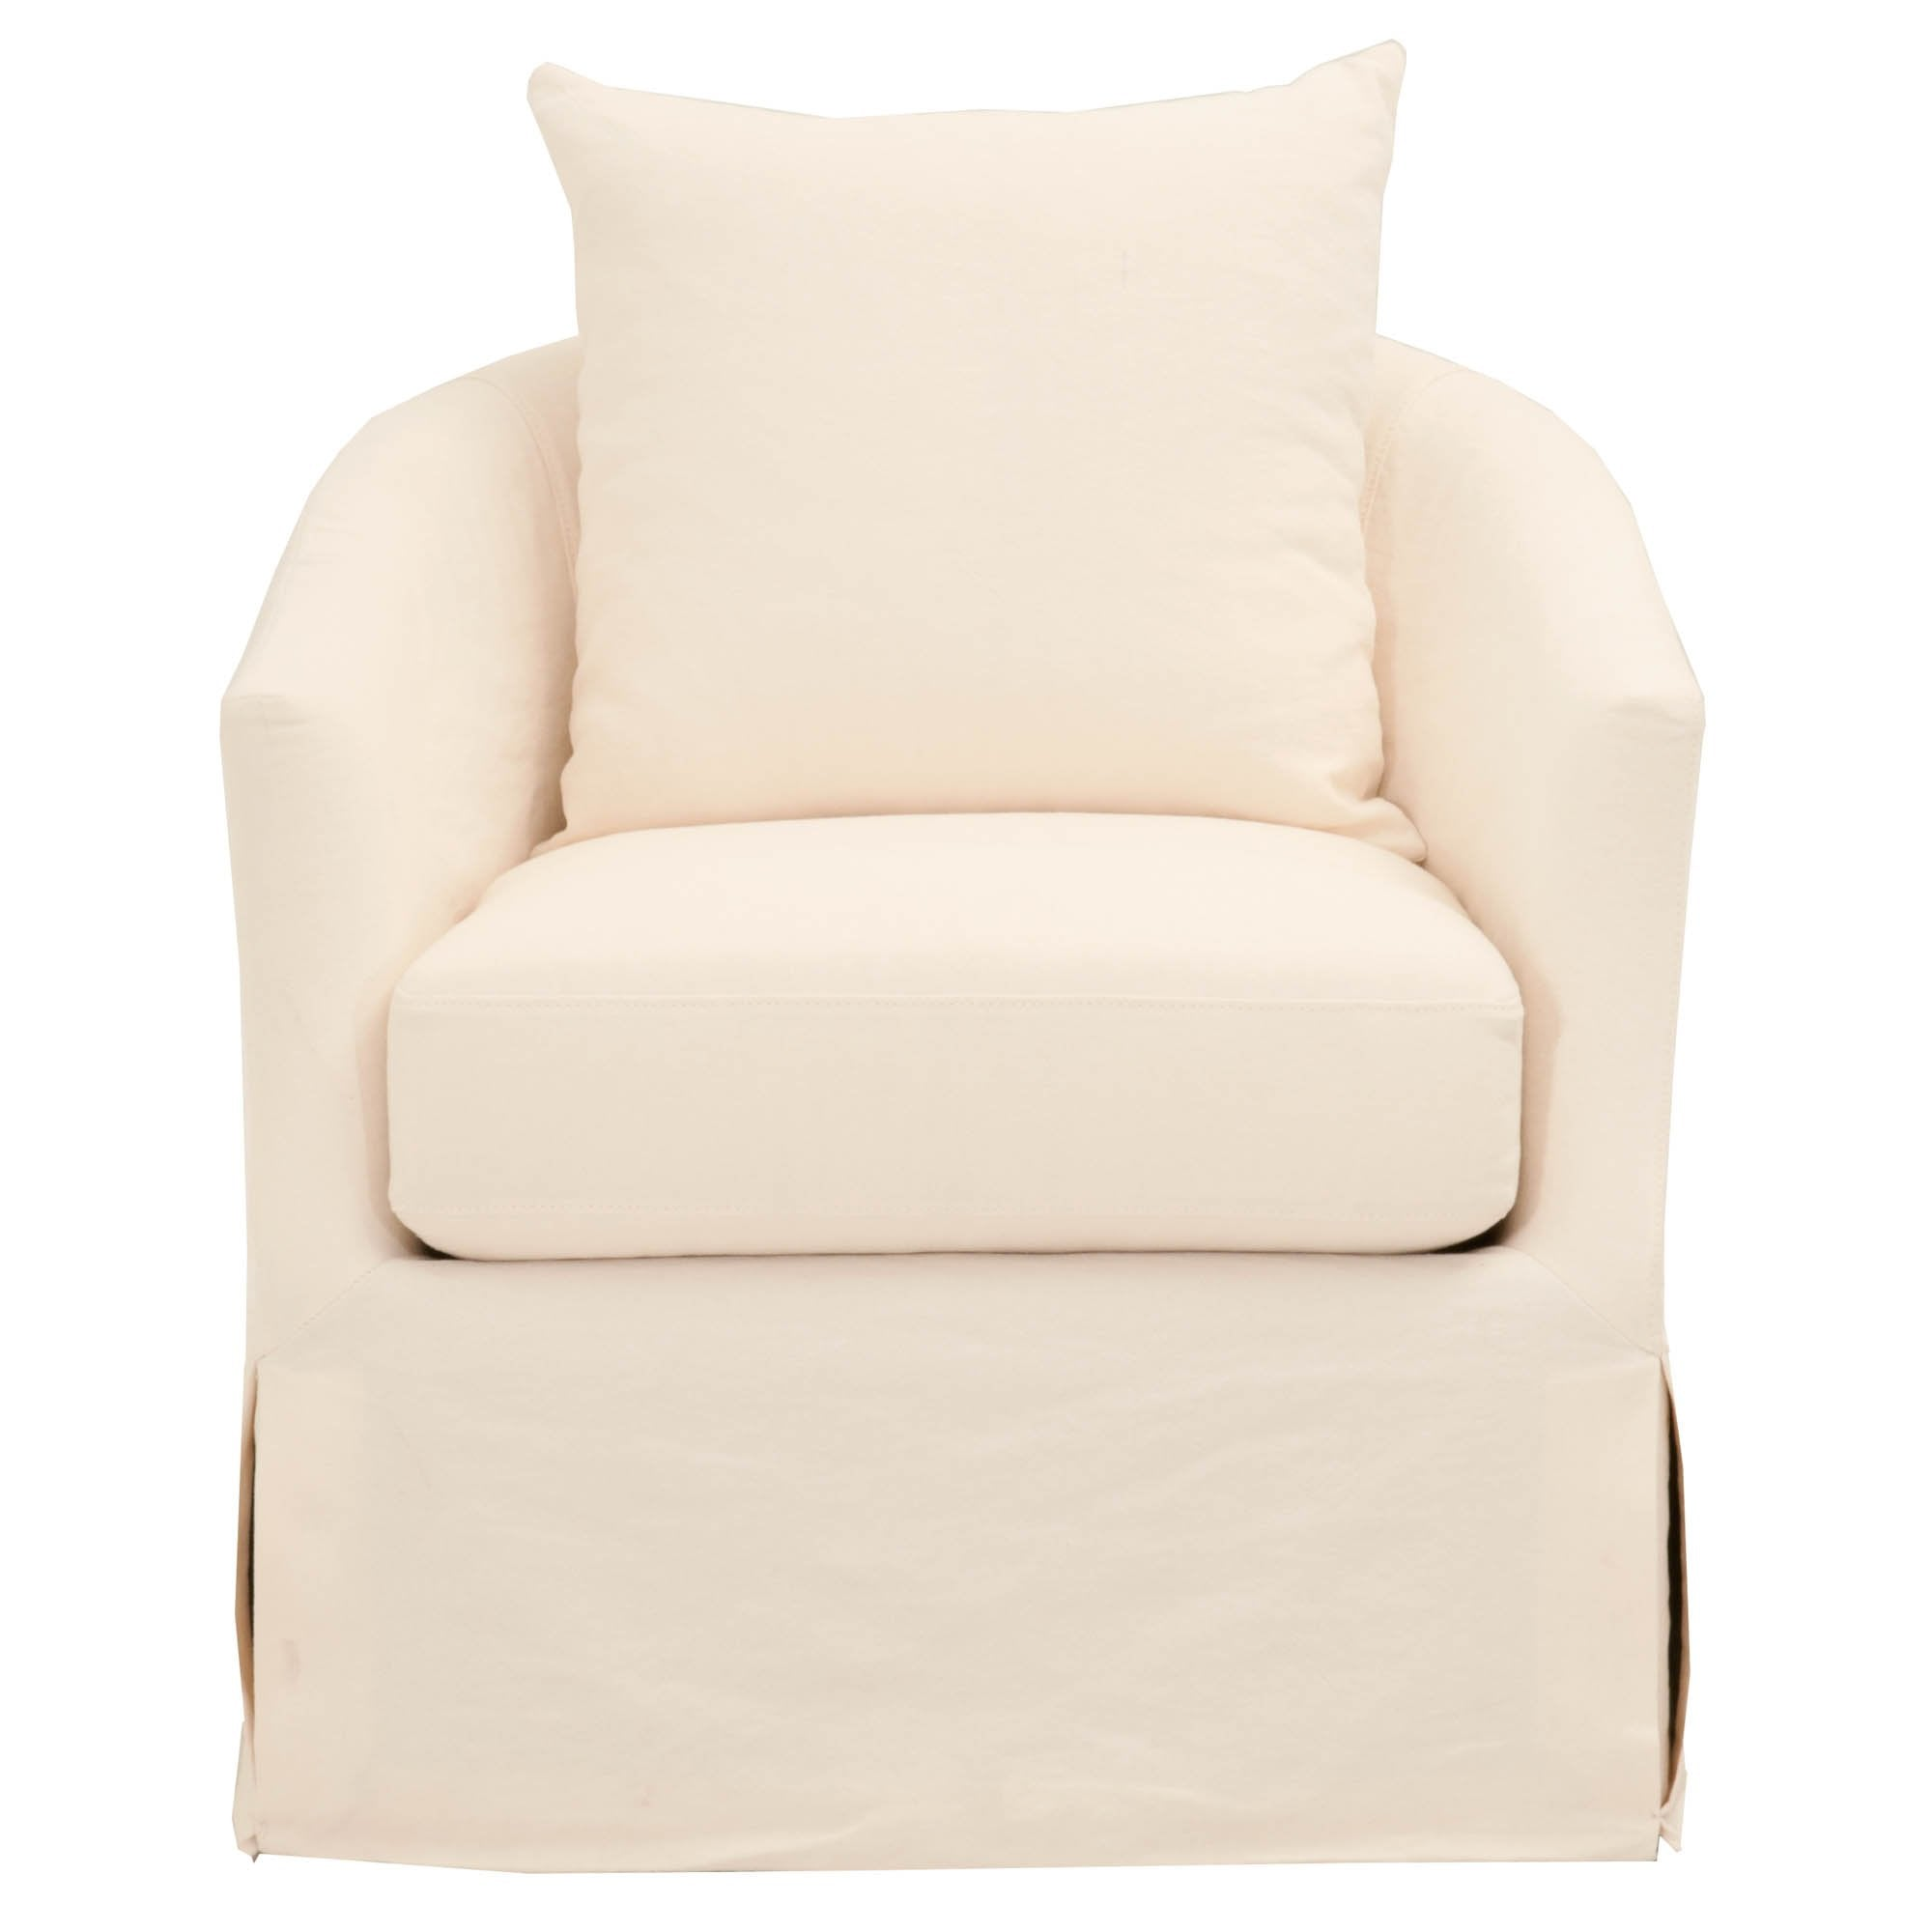 Remarkable Faye Slipcover Swivel Club Chair In Cream Crepe Fabric Theyellowbook Wood Chair Design Ideas Theyellowbookinfo